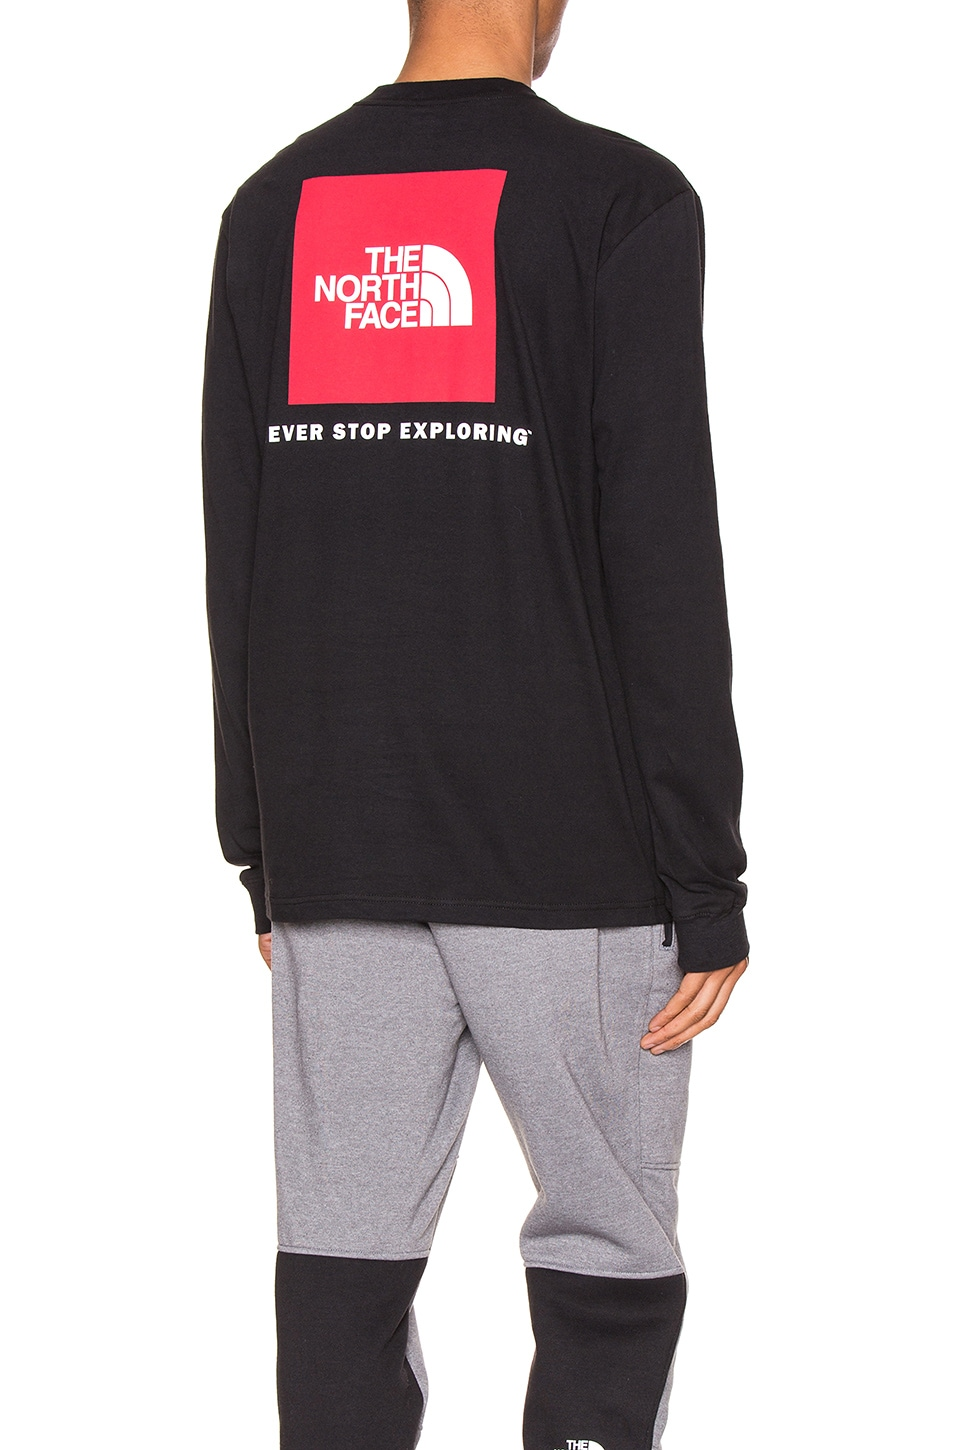 The North Face T-SHIRT LONG SLEEVE RED BOX